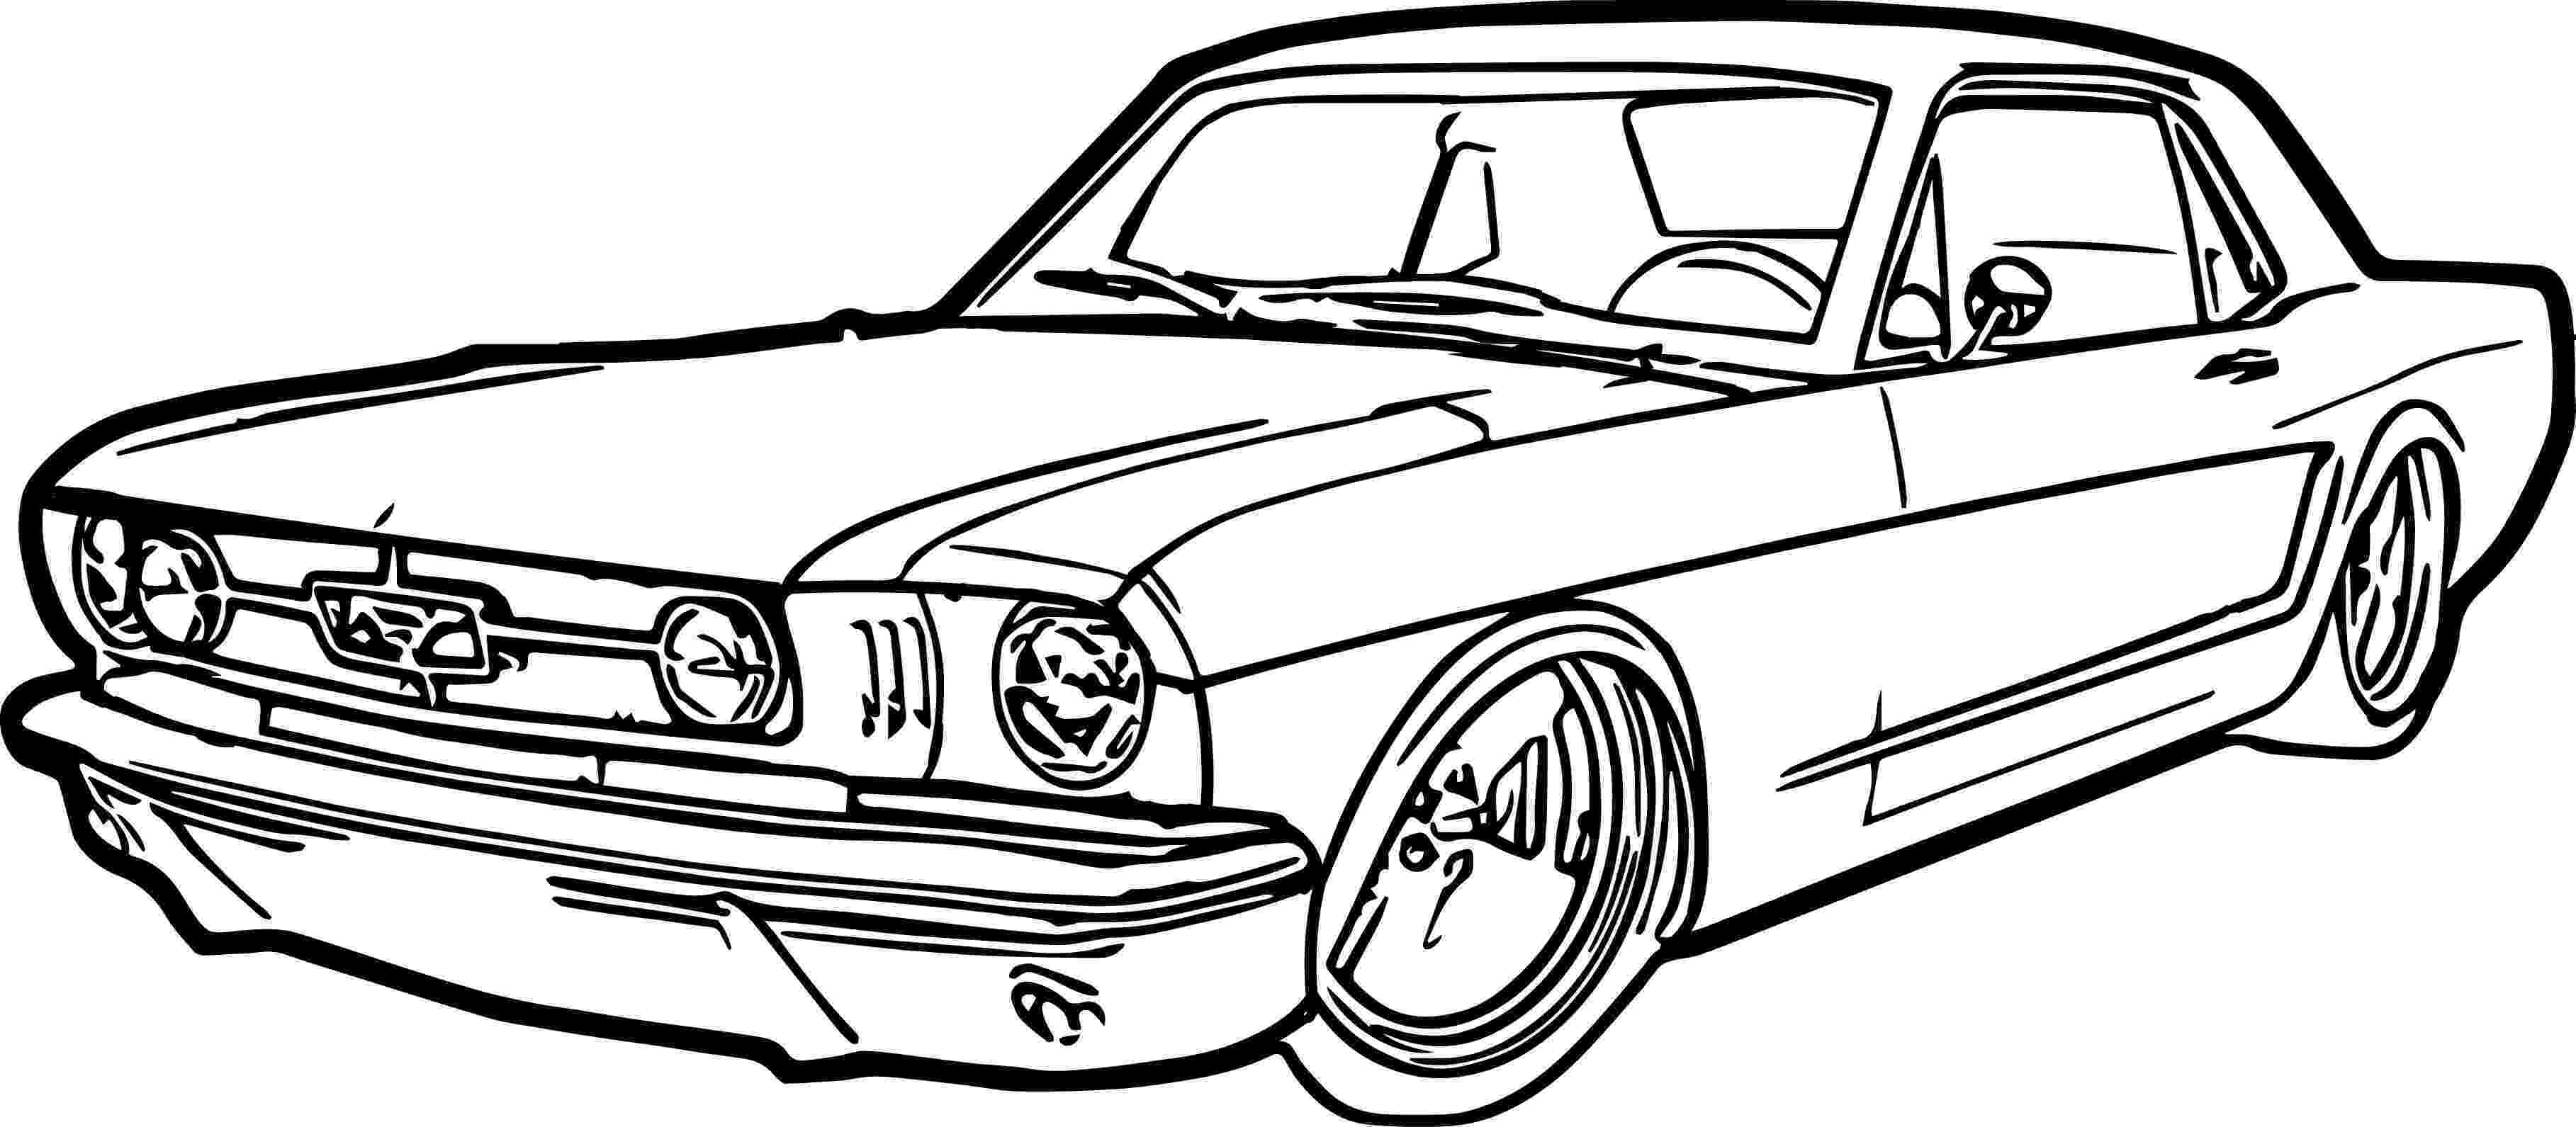 coloring pages hot rod cars pick up hot rod cars coloring pages kids play color rod pages hot coloring cars